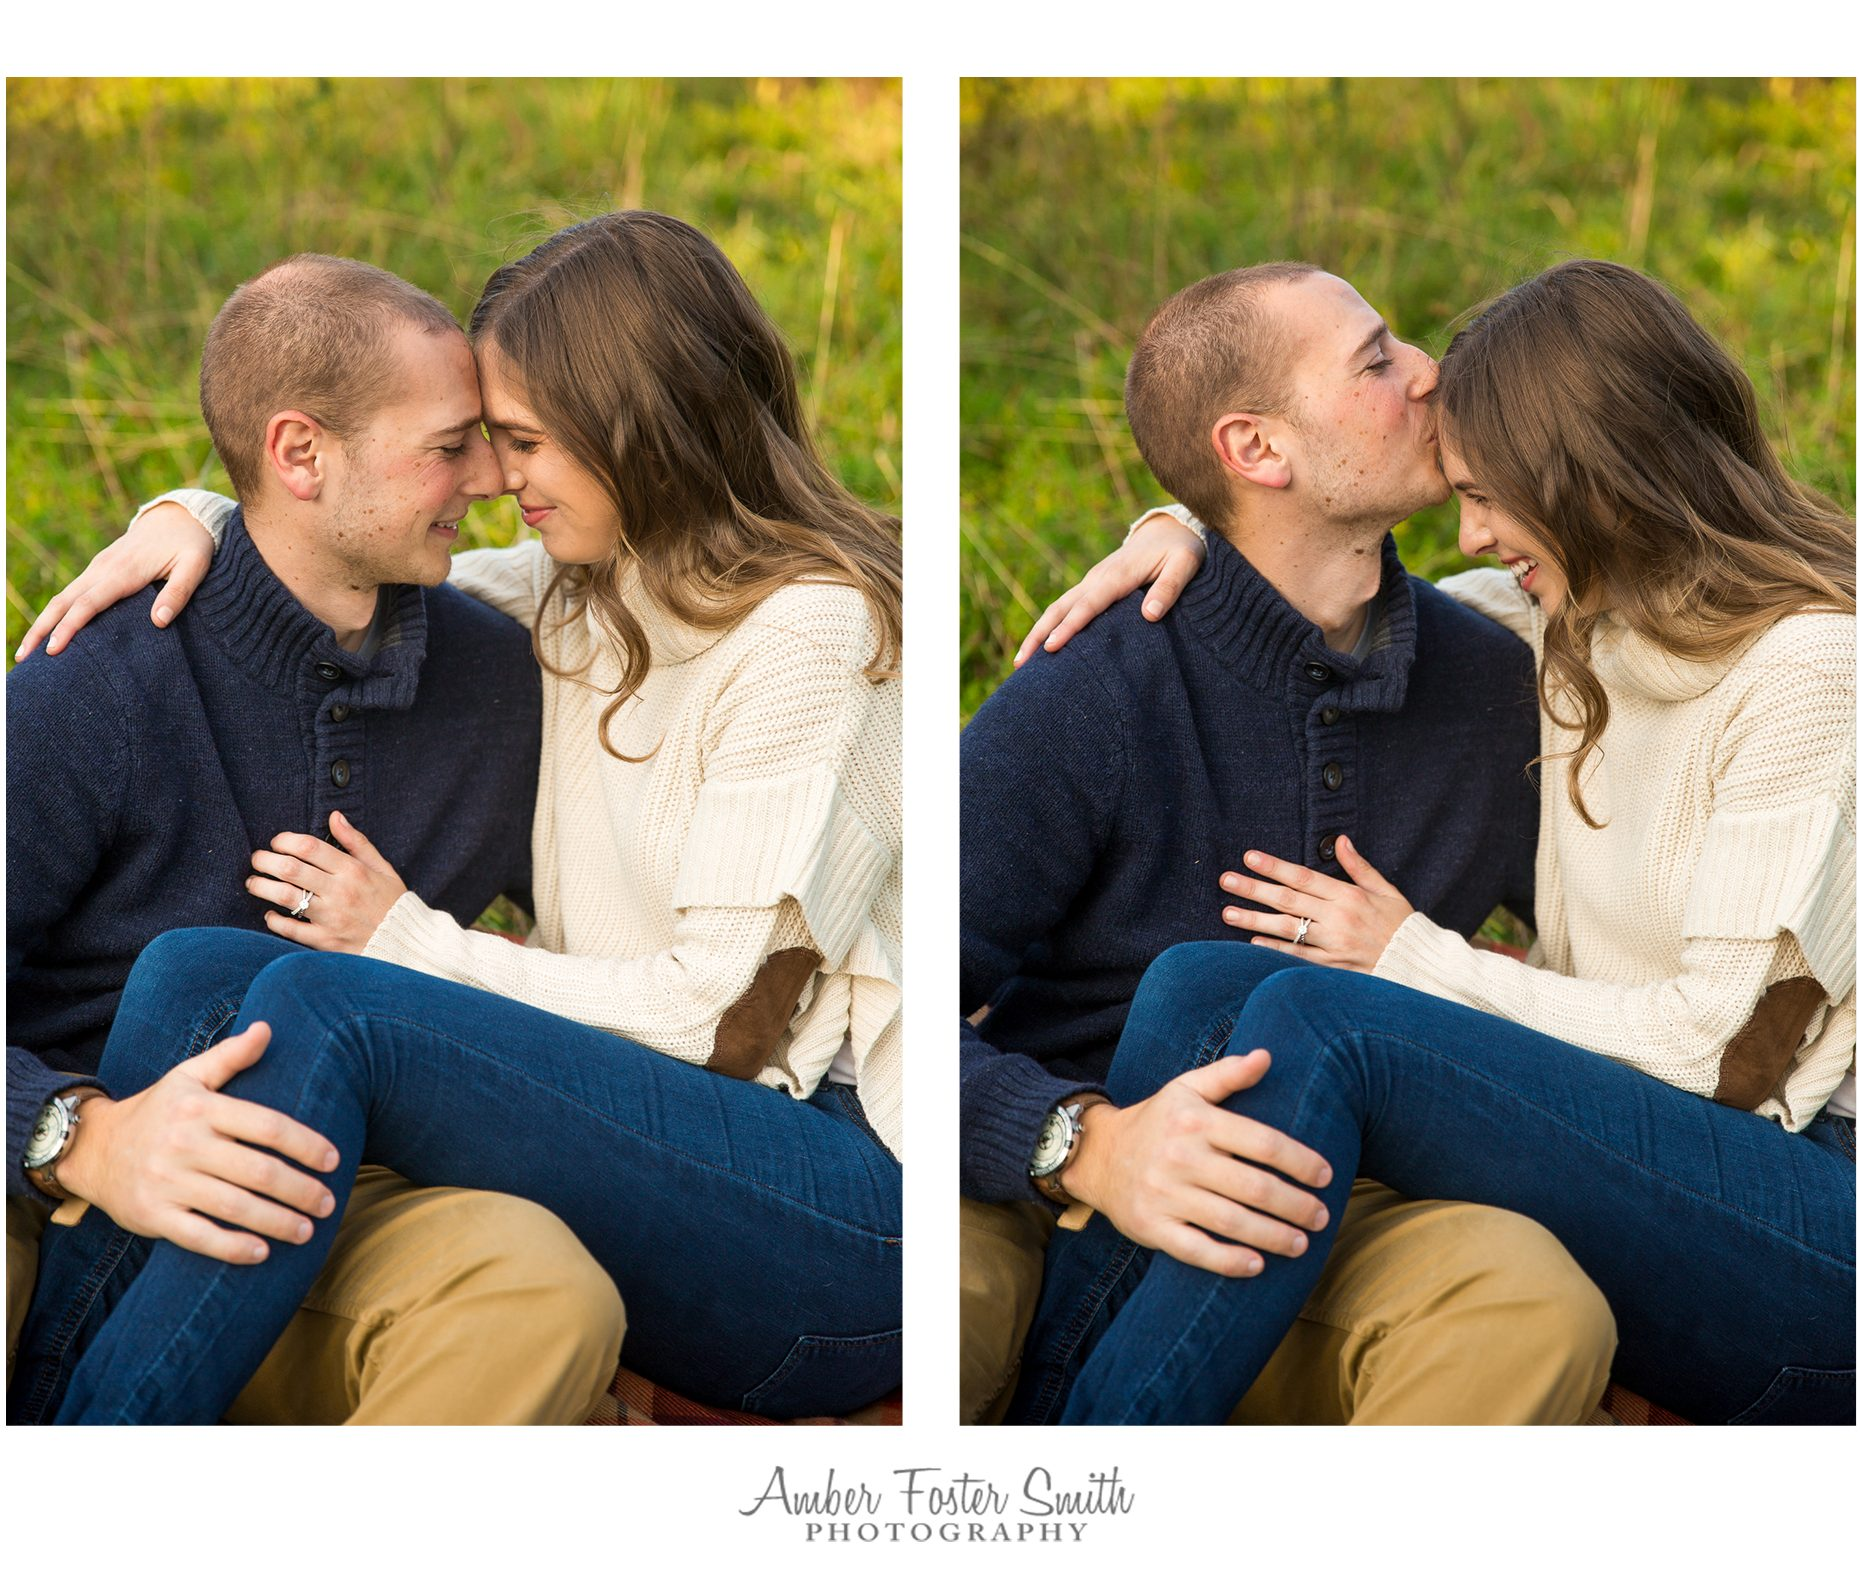 Amber Foster Smith Photography - Holly Springs, NC | Holly Springs Wedding and Engagement Photographer